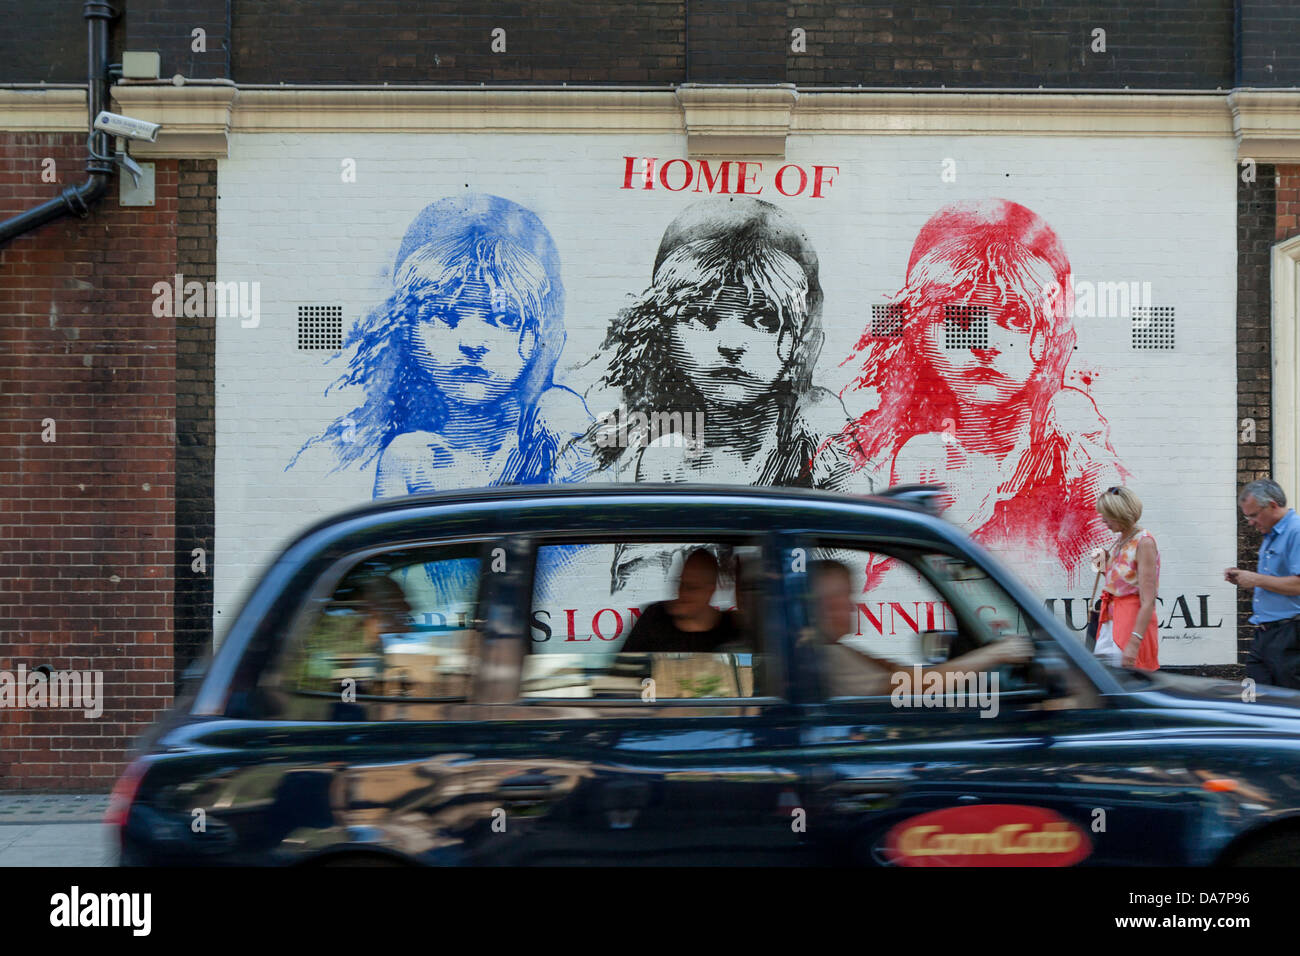 A black cab passes in front of a mural for Les Miserables in the West End - Stock Image